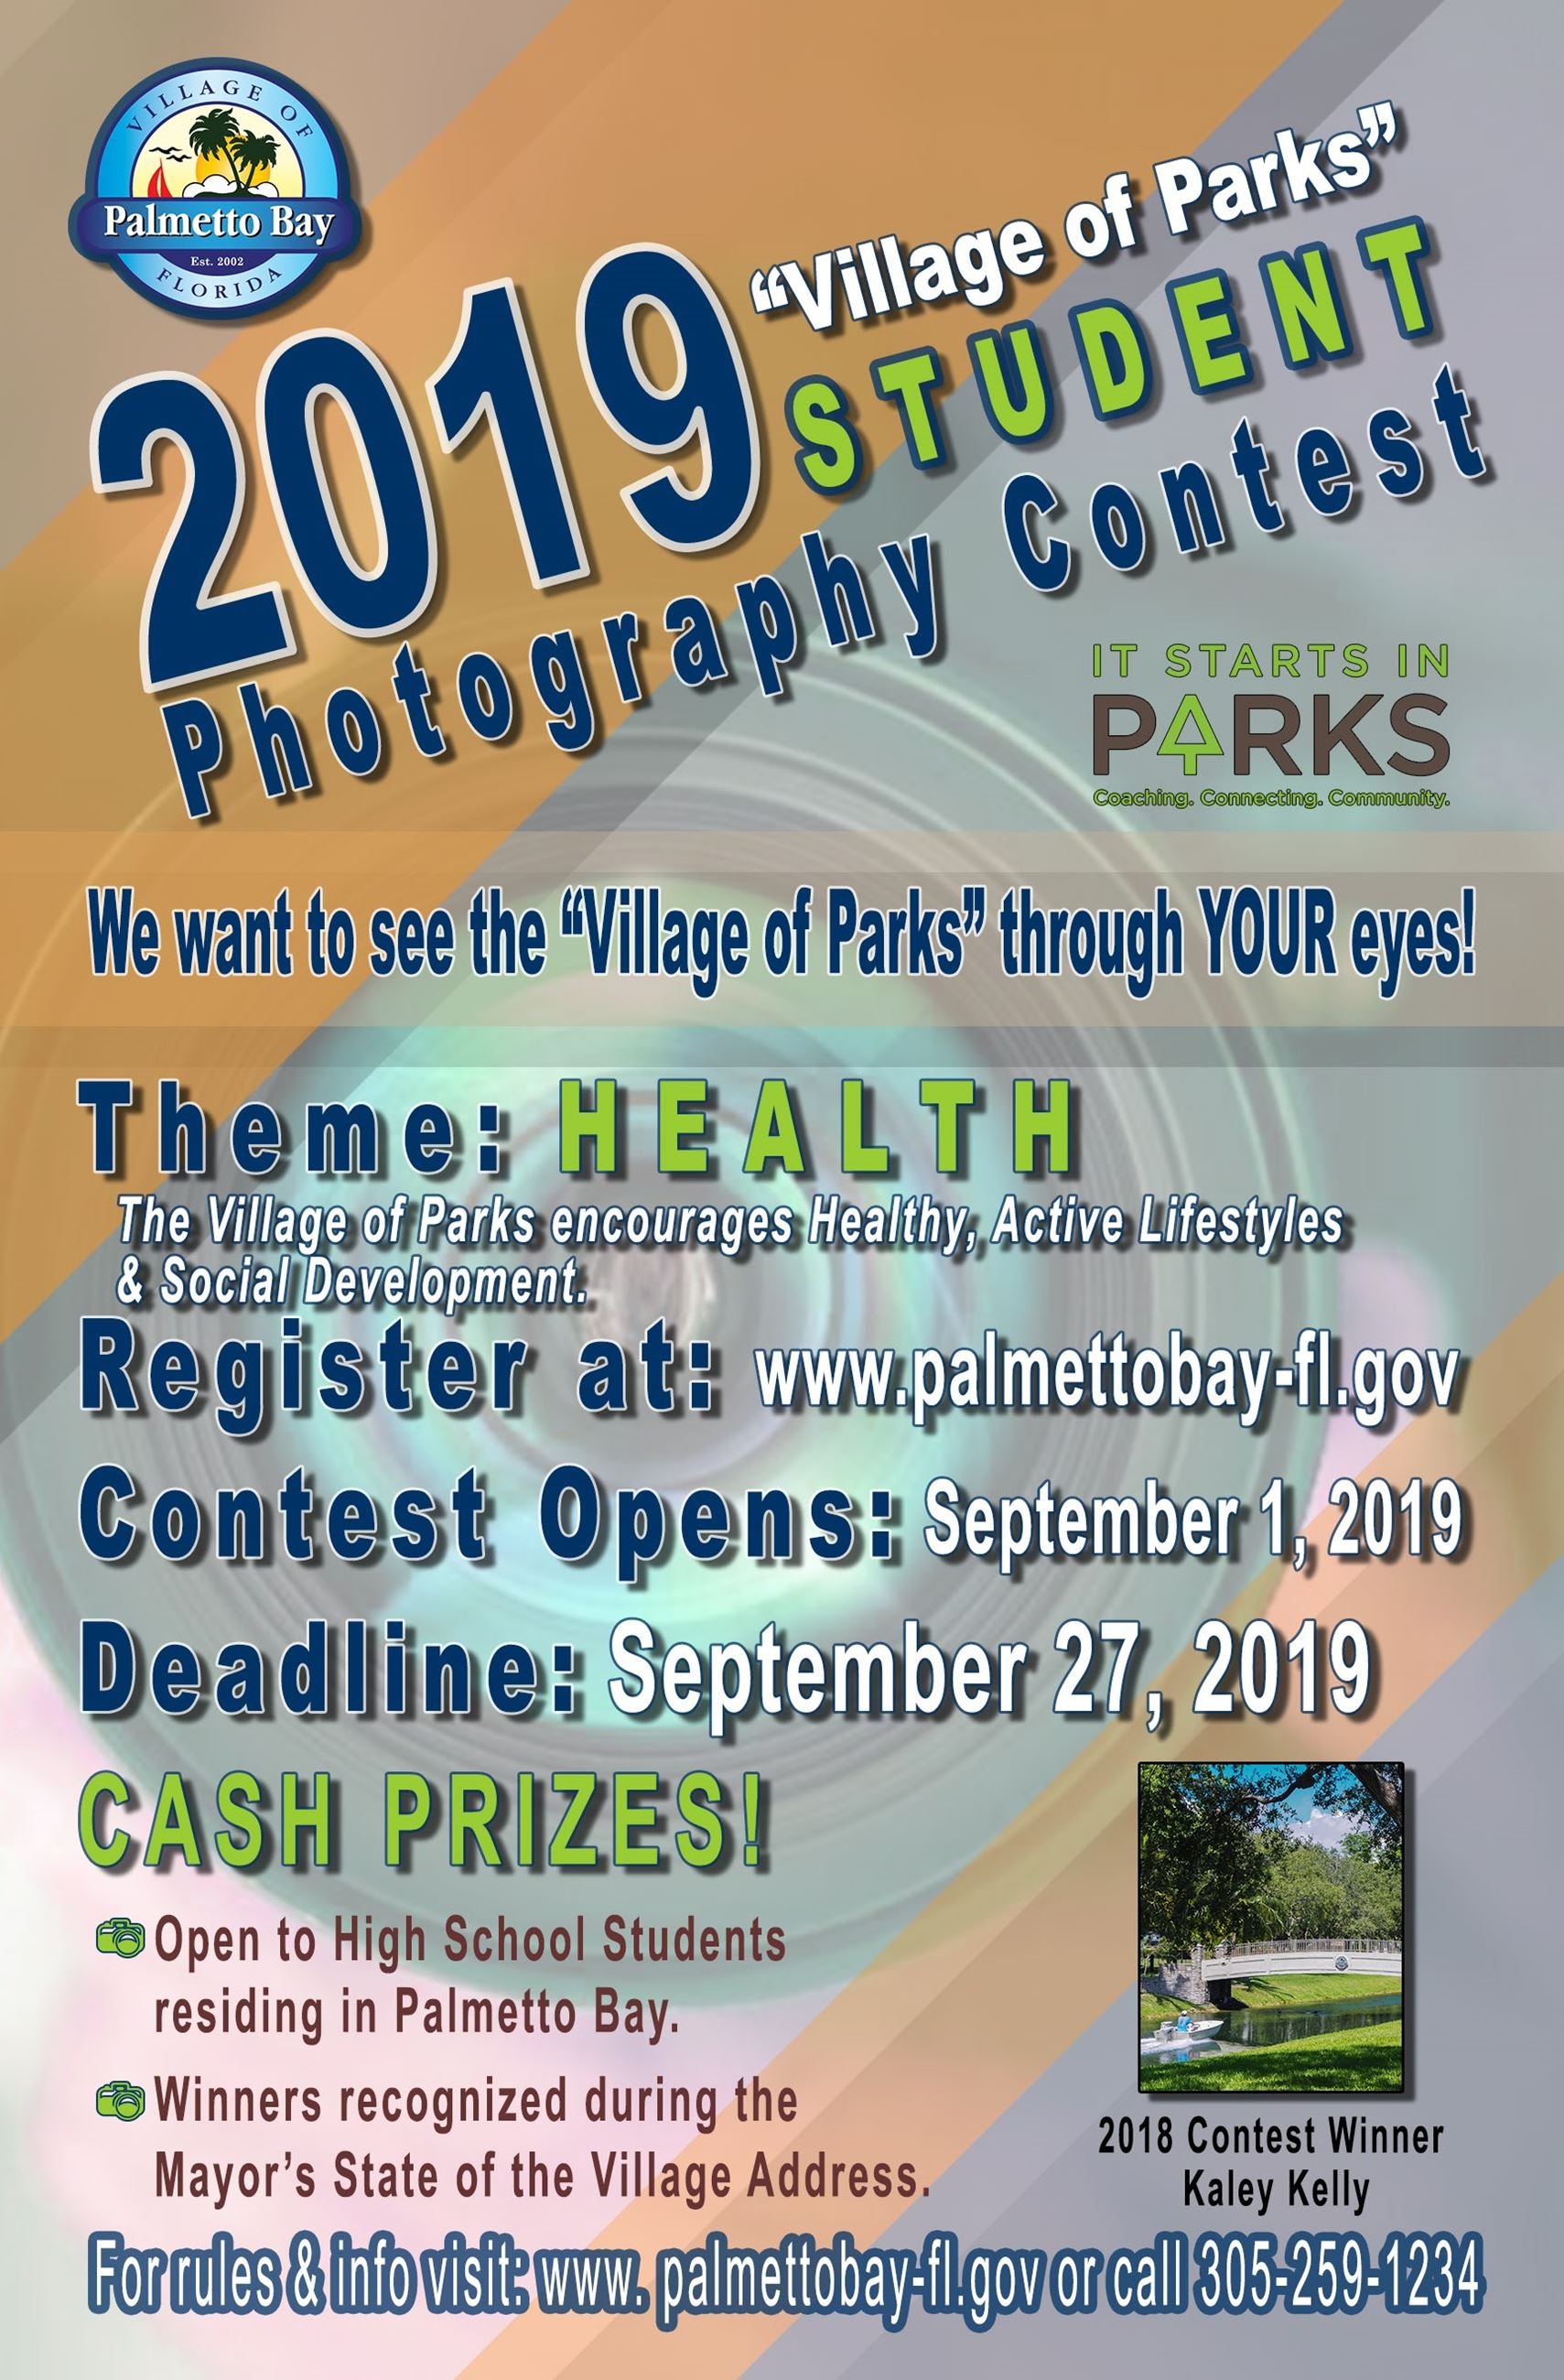 2019 Village of Parks Photo Contest